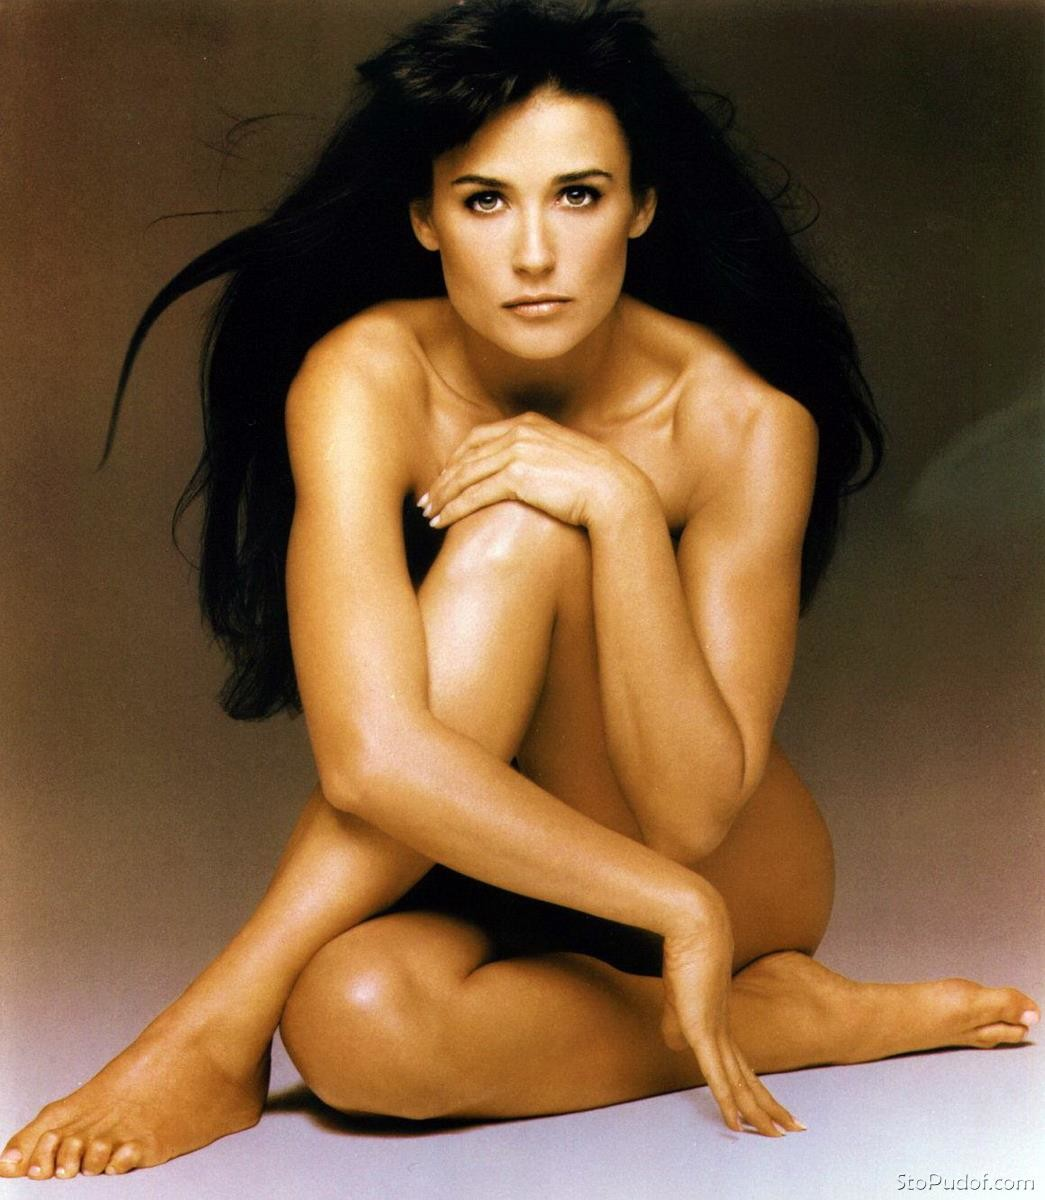 Nude photos of demi moore